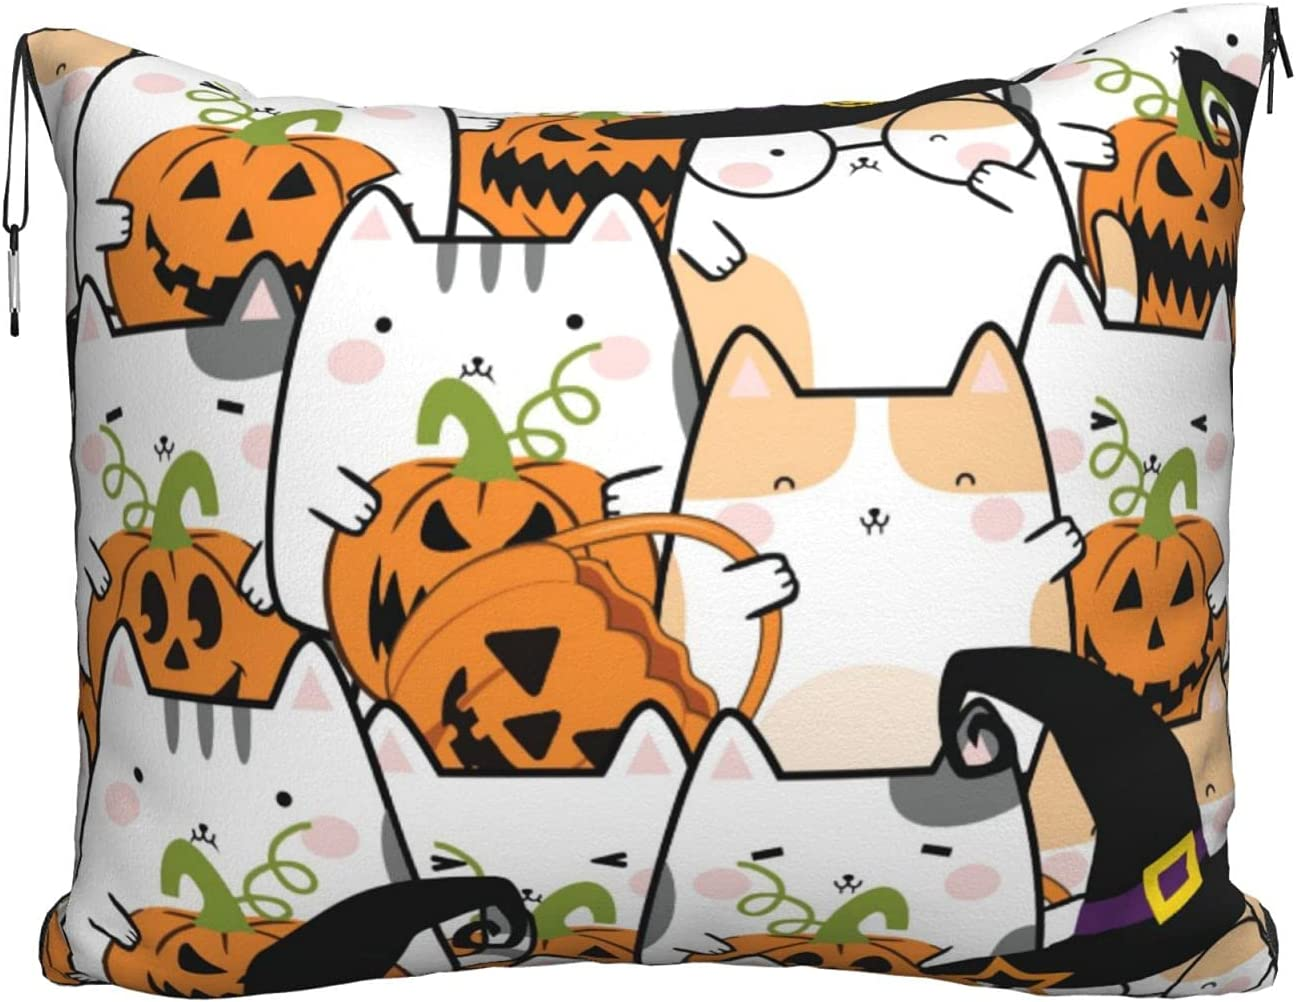 Travel Blanket Pillow Louisville-Jefferson County Mall Happy Halloween in B Pillowc Throw Credence